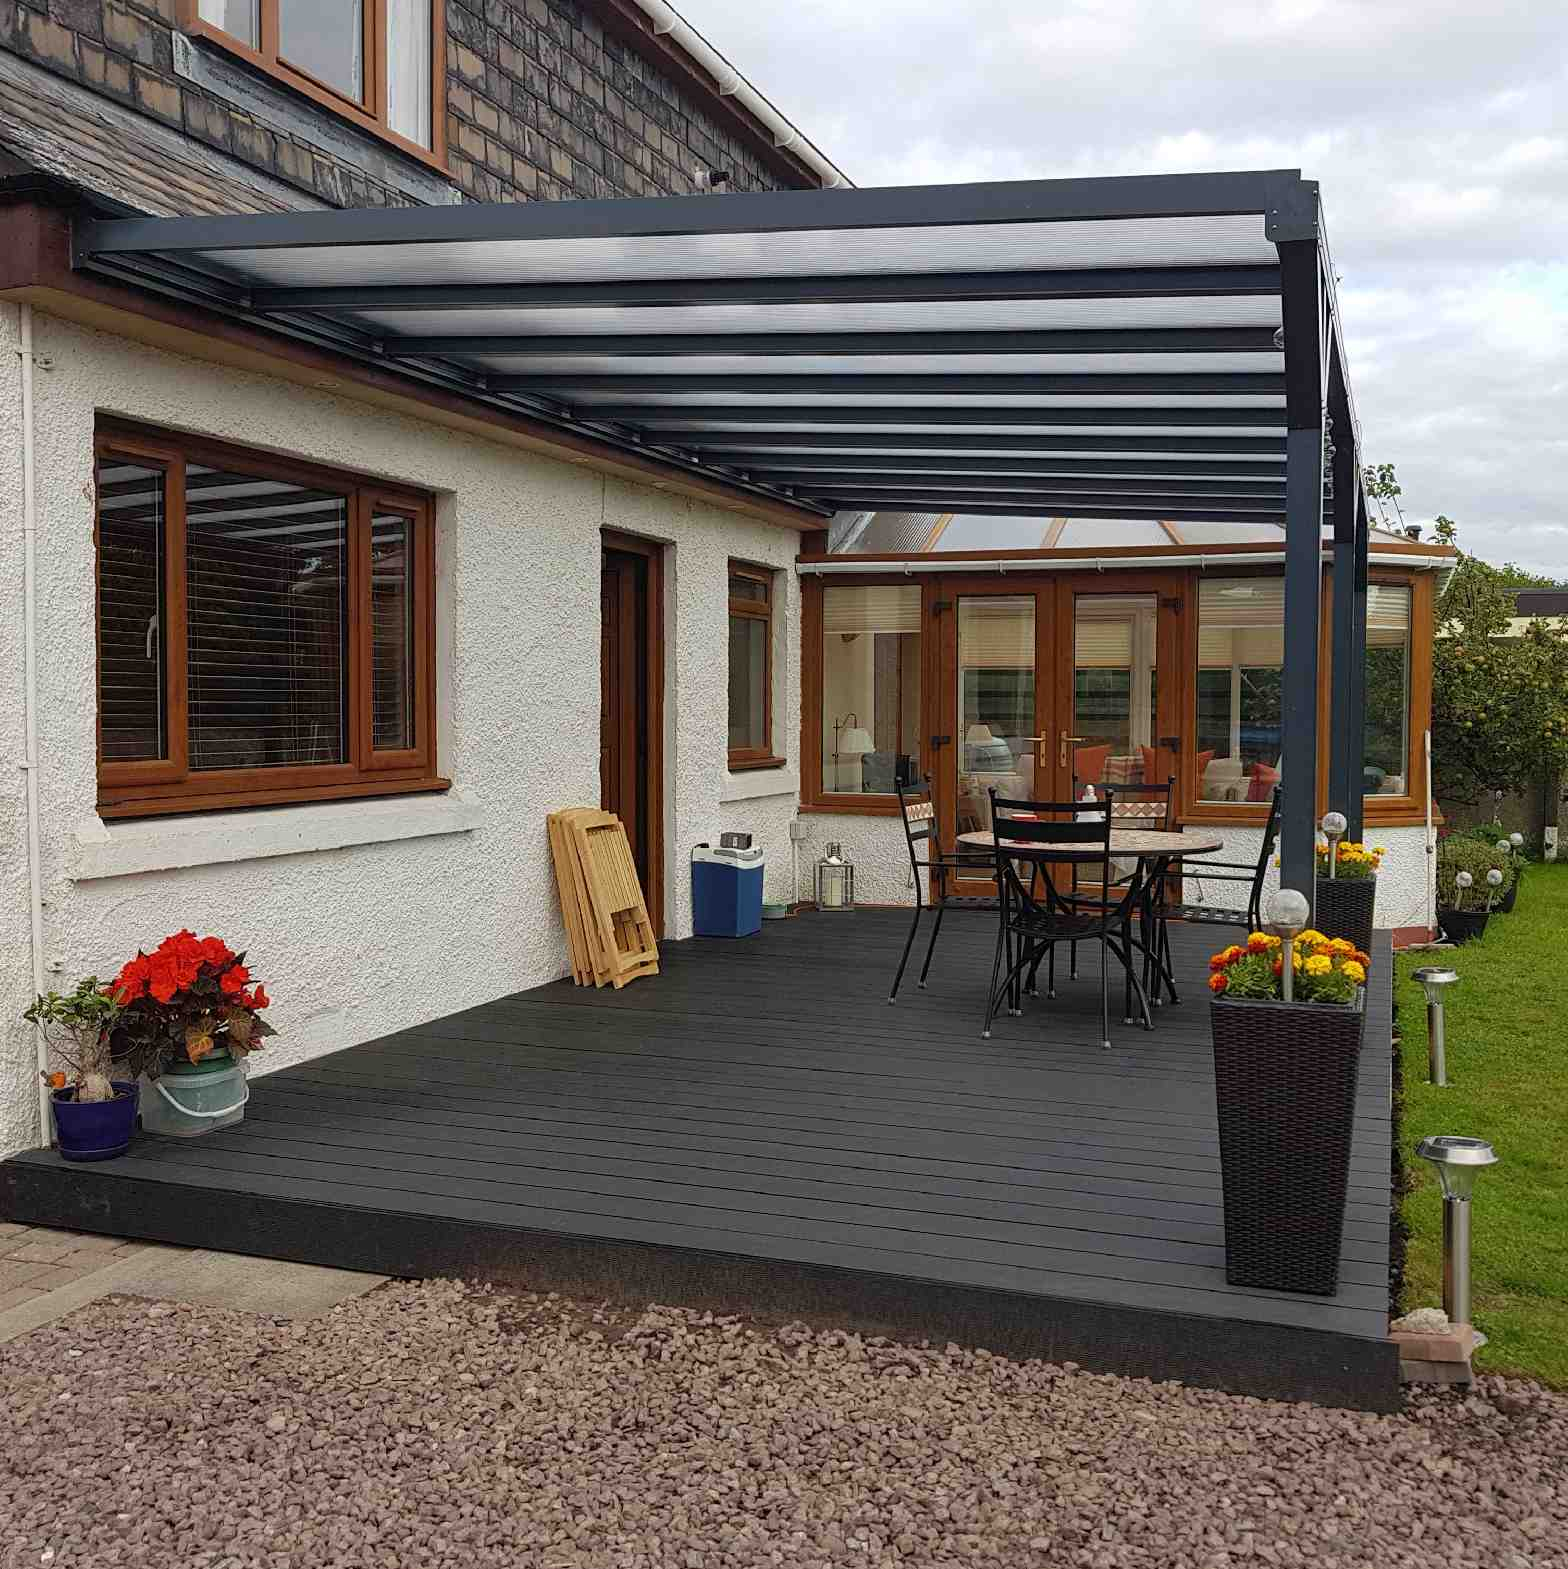 Buy Omega Verandah, Anthracite Grey, 6mm Glass Clear Plate Polycarbonate Glazing - 7.7m (W) x 3.5m (P), (4) Supporting Posts online today